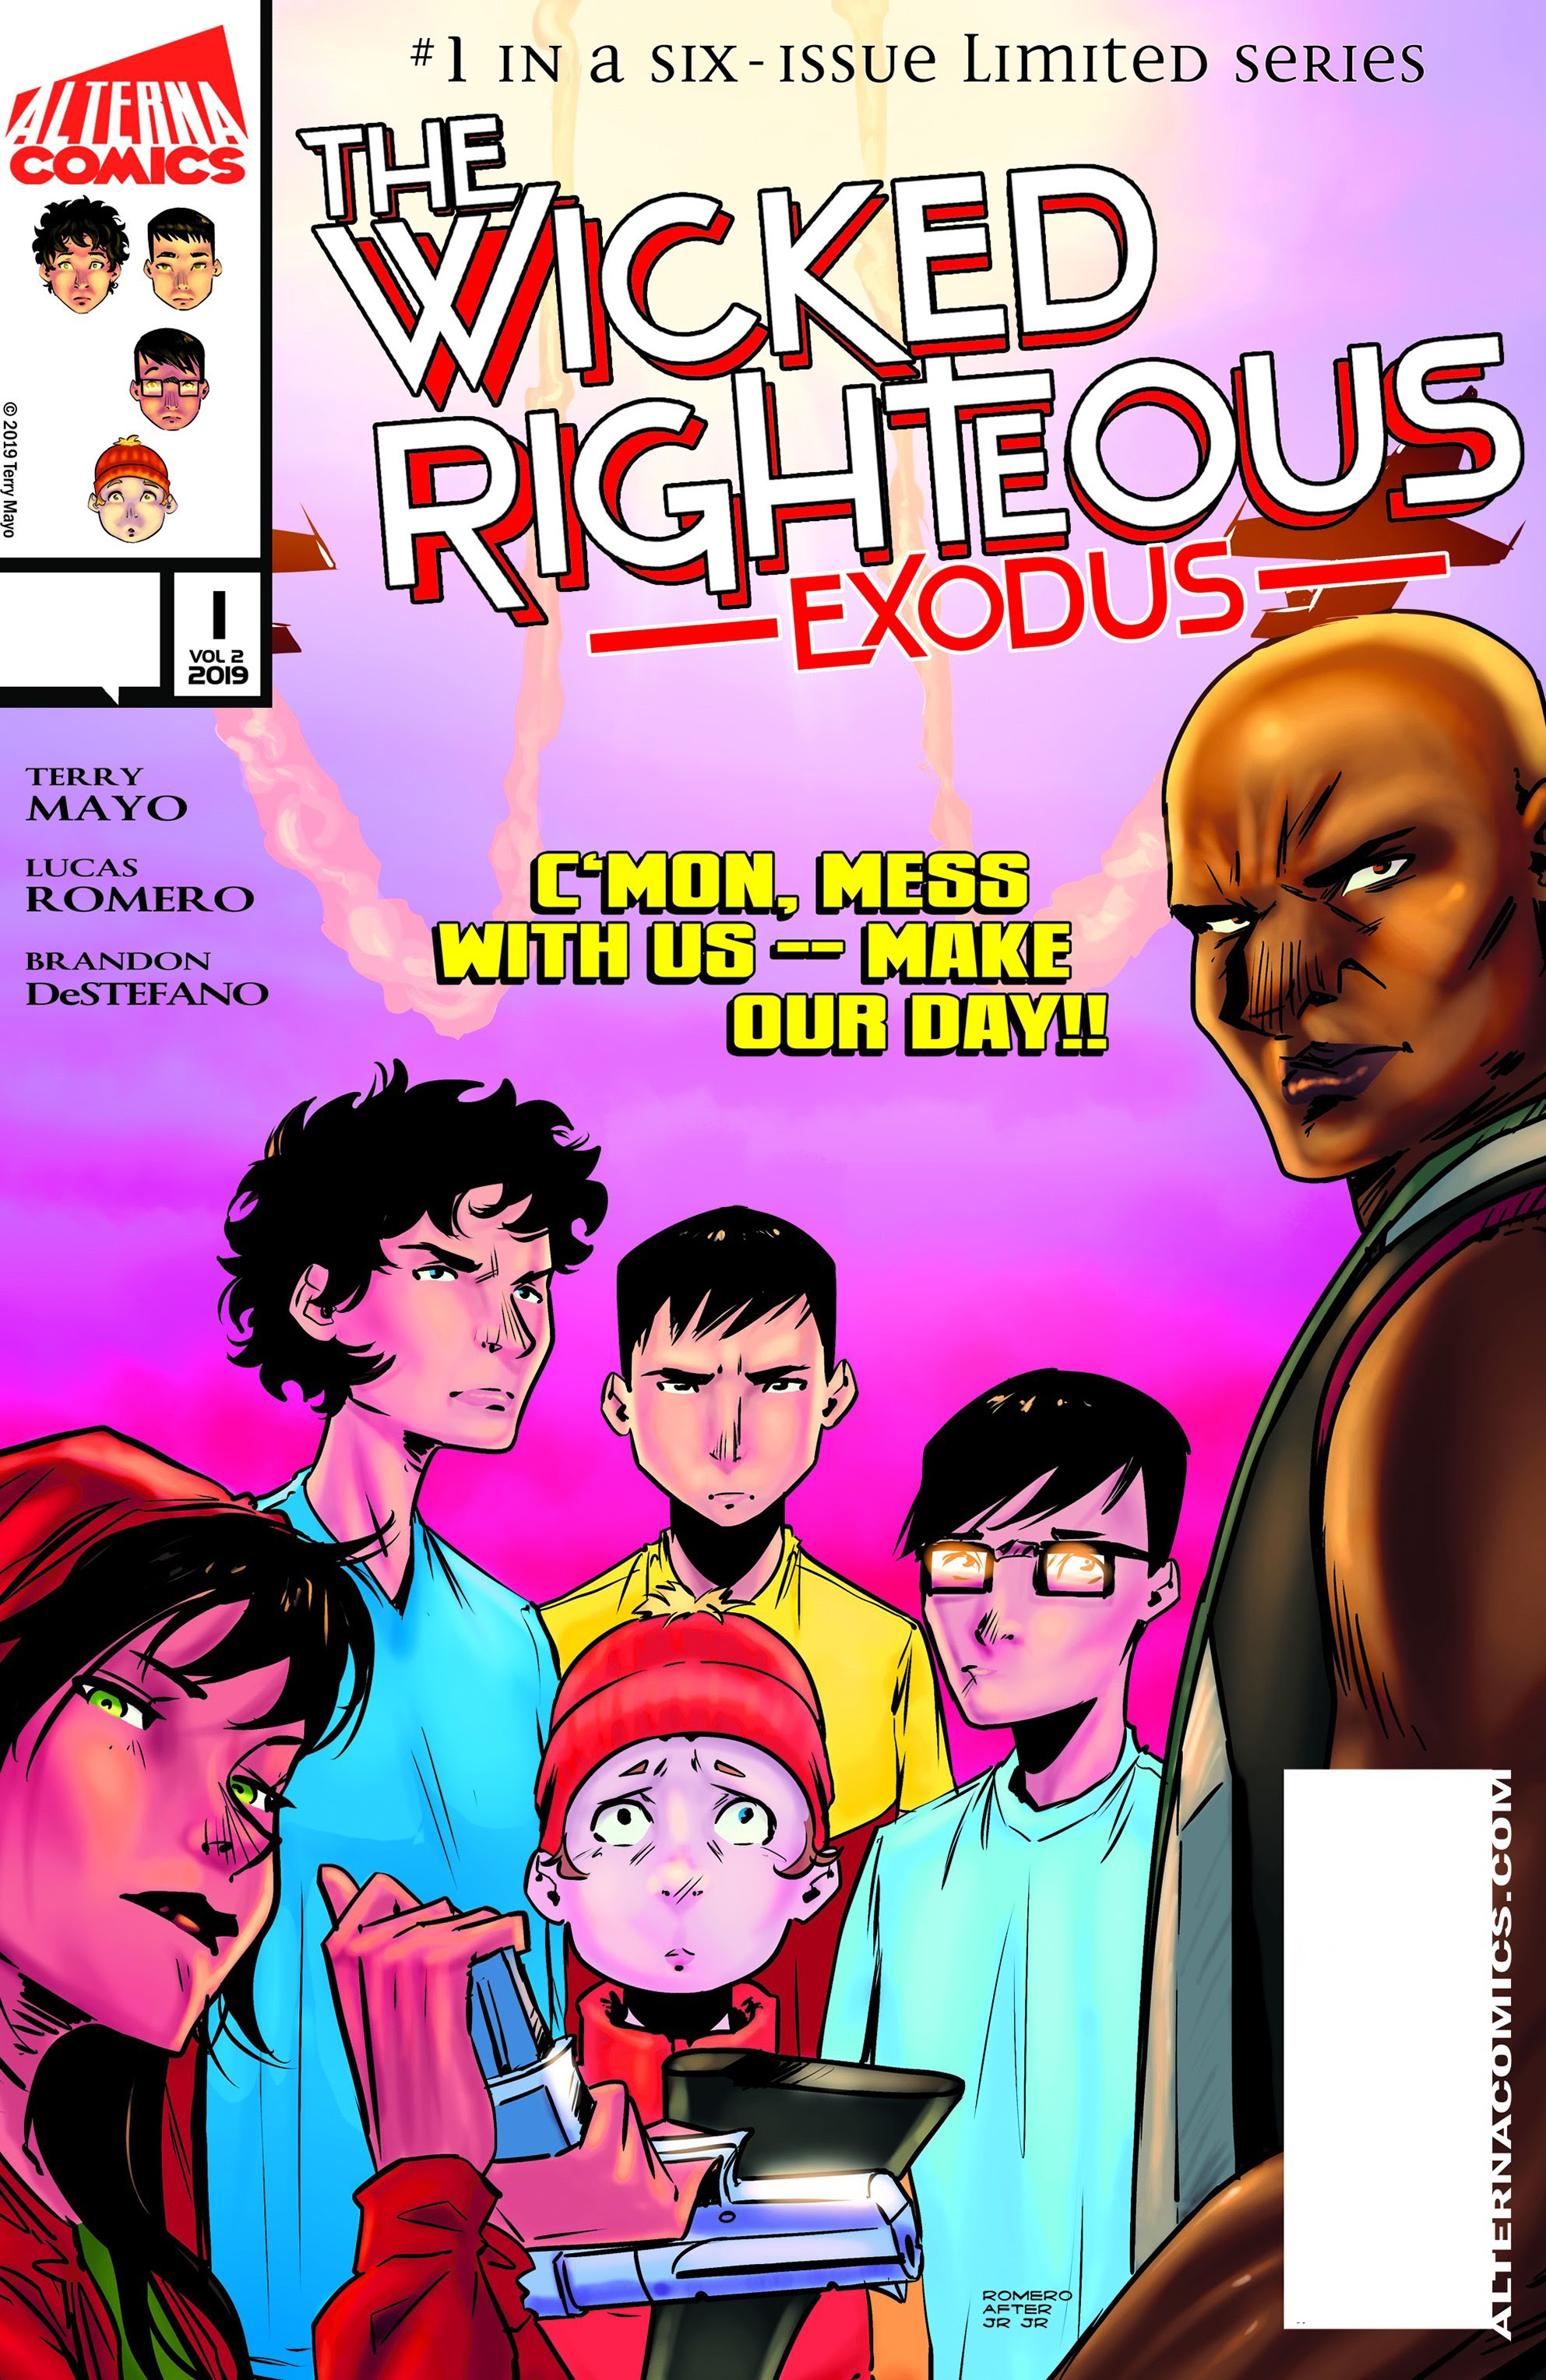 The Wicked Righteous: Exodus 1 Page 1